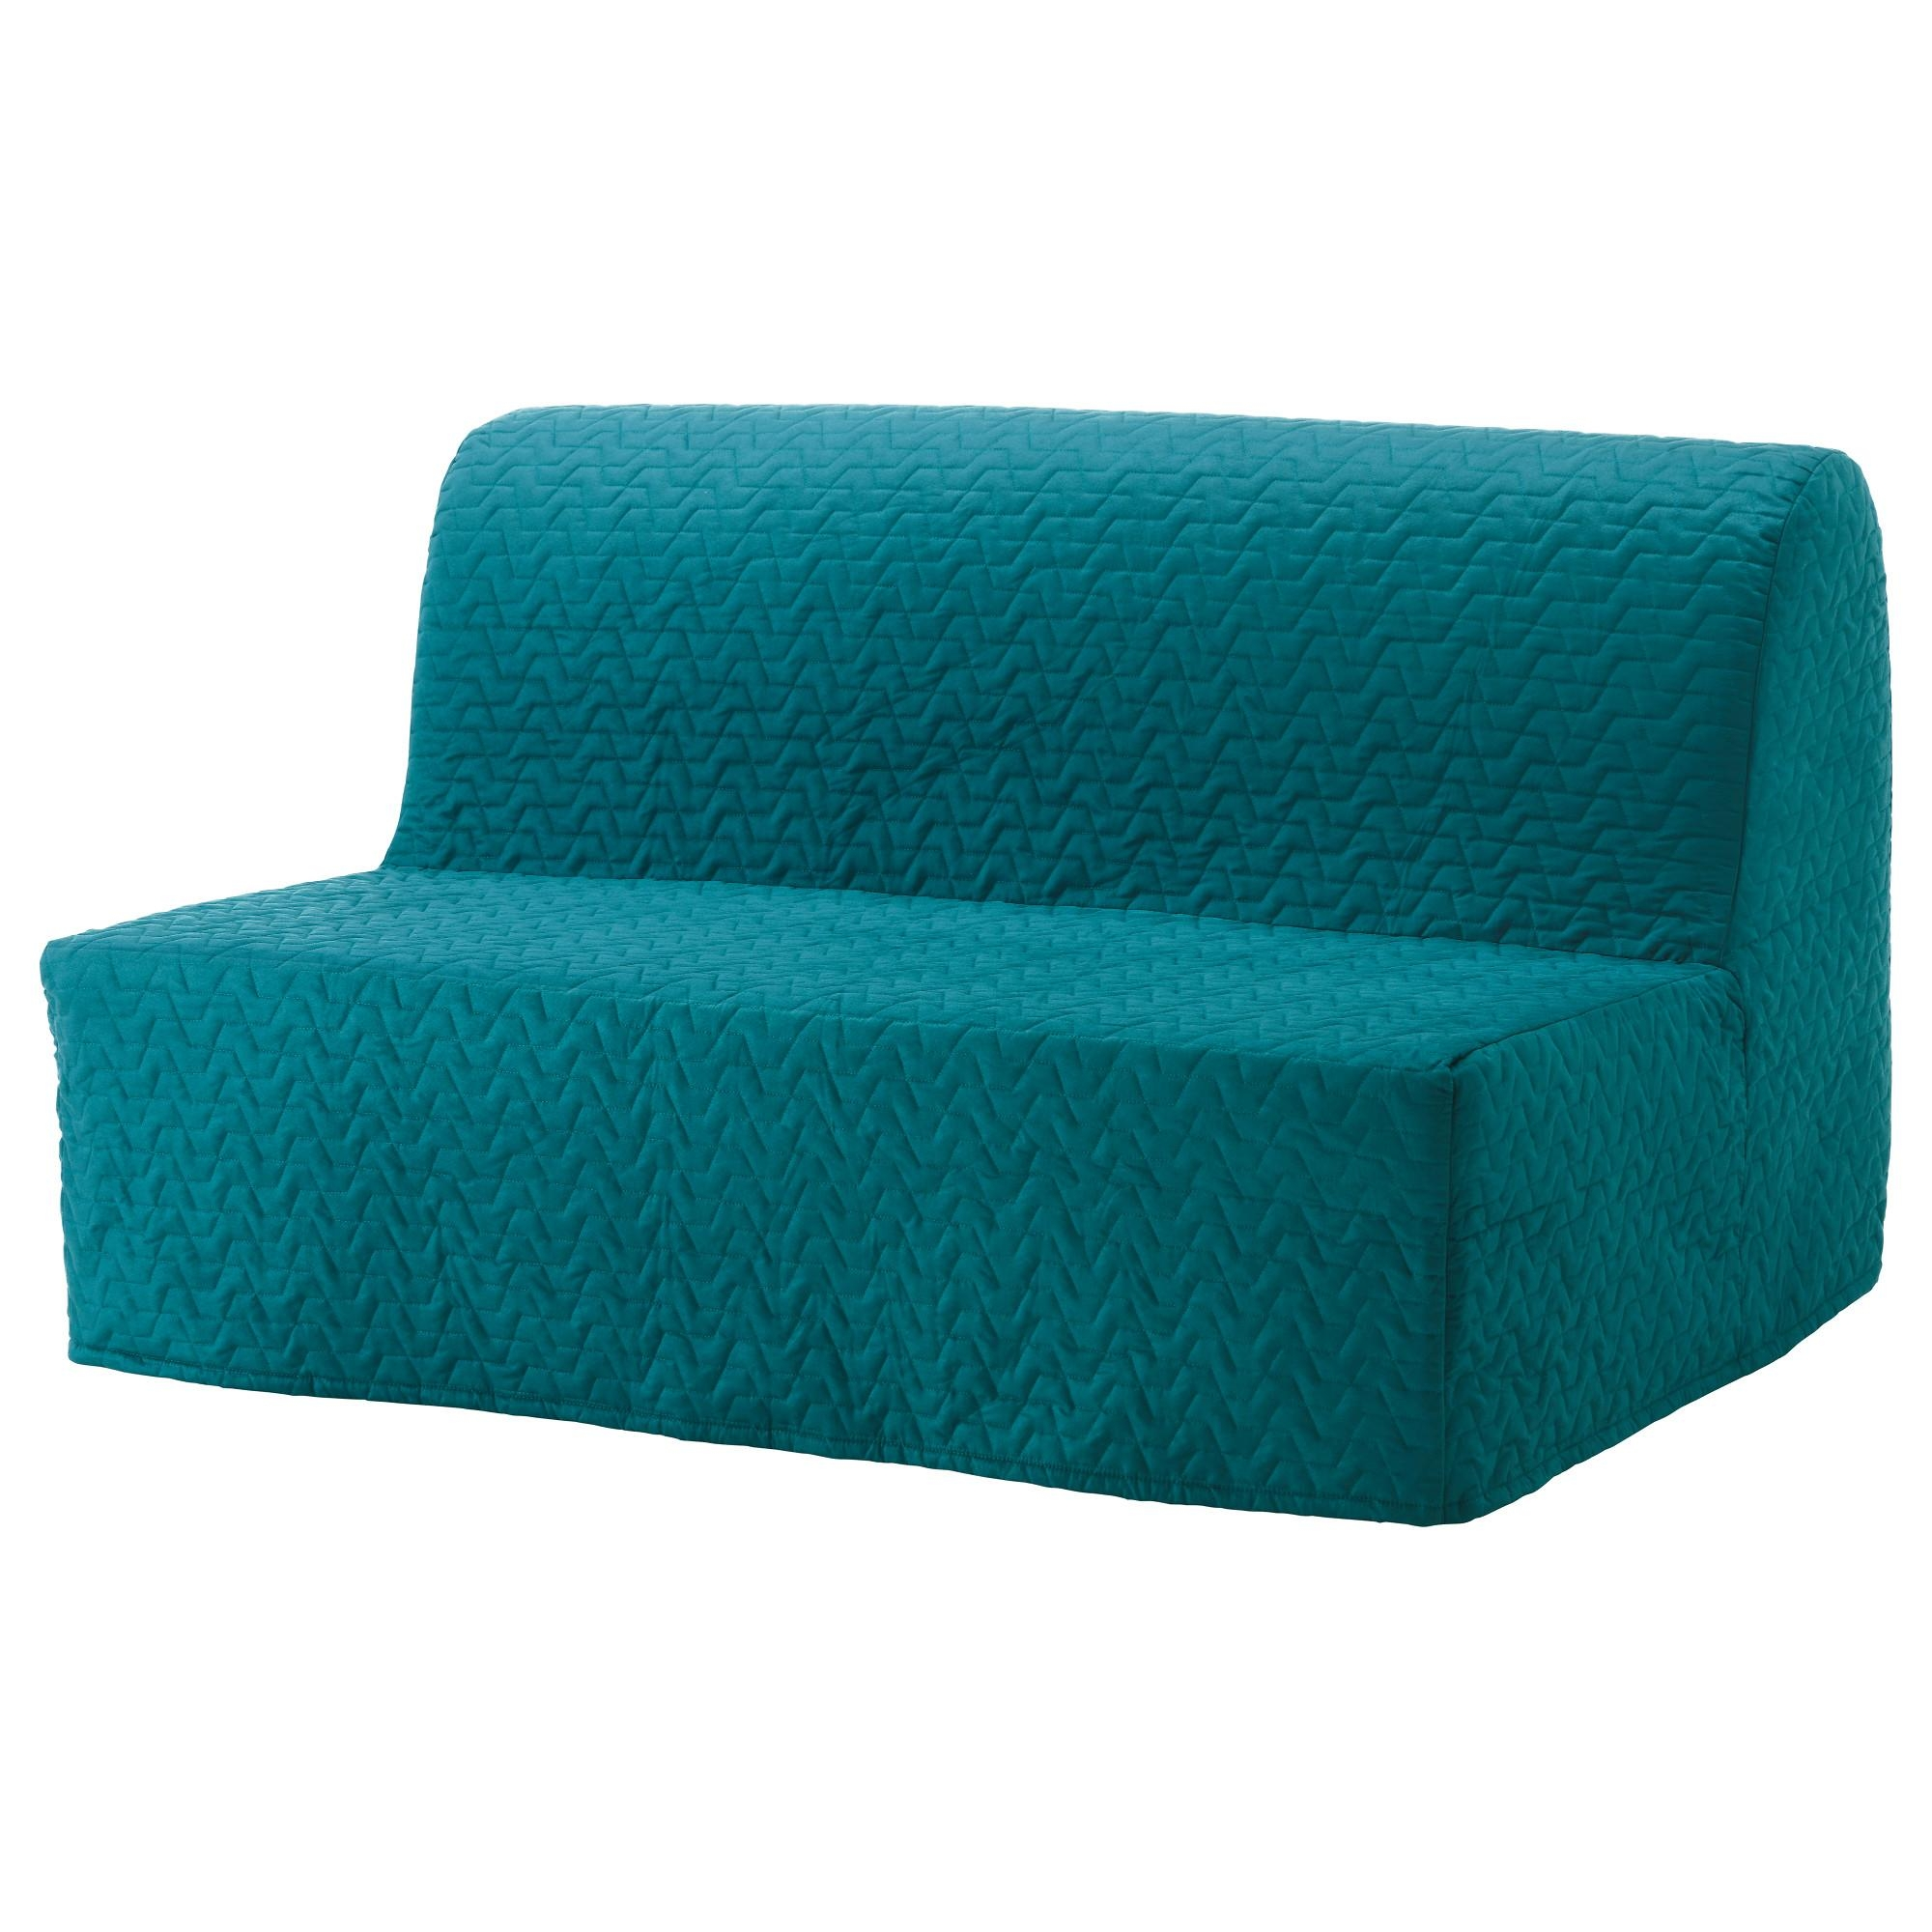 Furniture: Classy Ikea Couch Covers Design For Stylish Living Room With Turquoise Sofa Covers (Image 5 of 20)